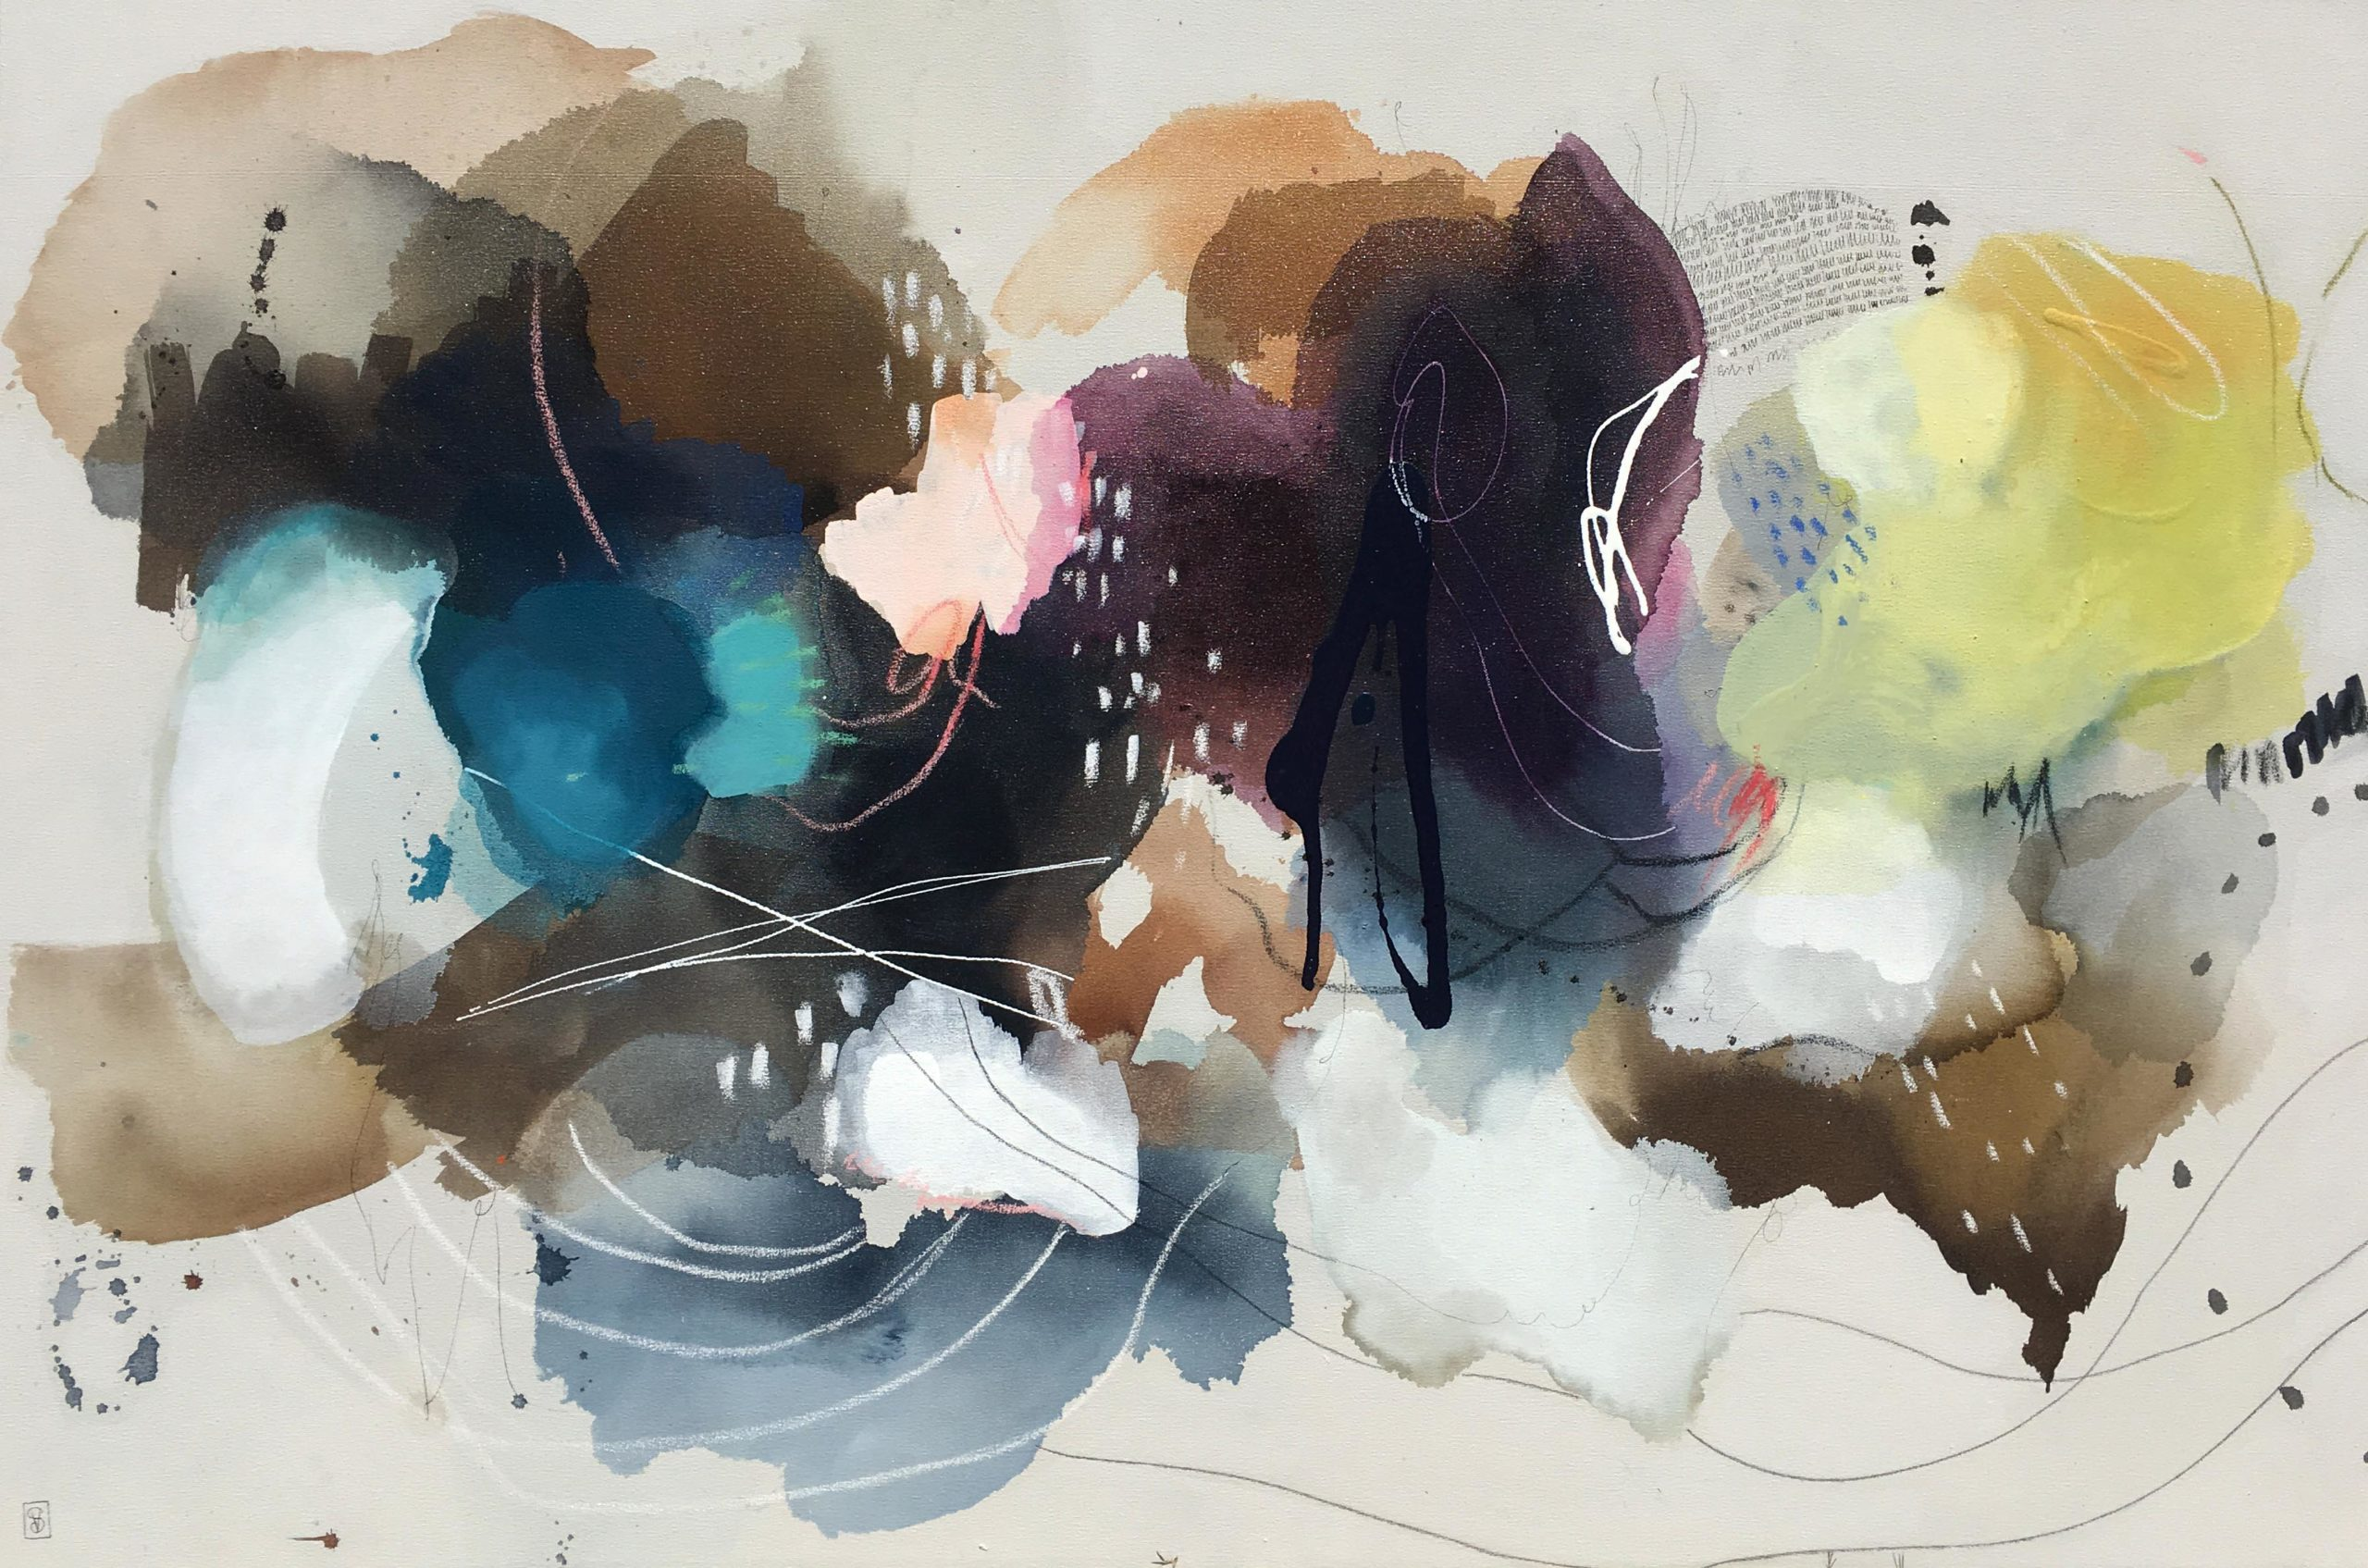 Vicky Sanders Abstract - Cotton Clouds